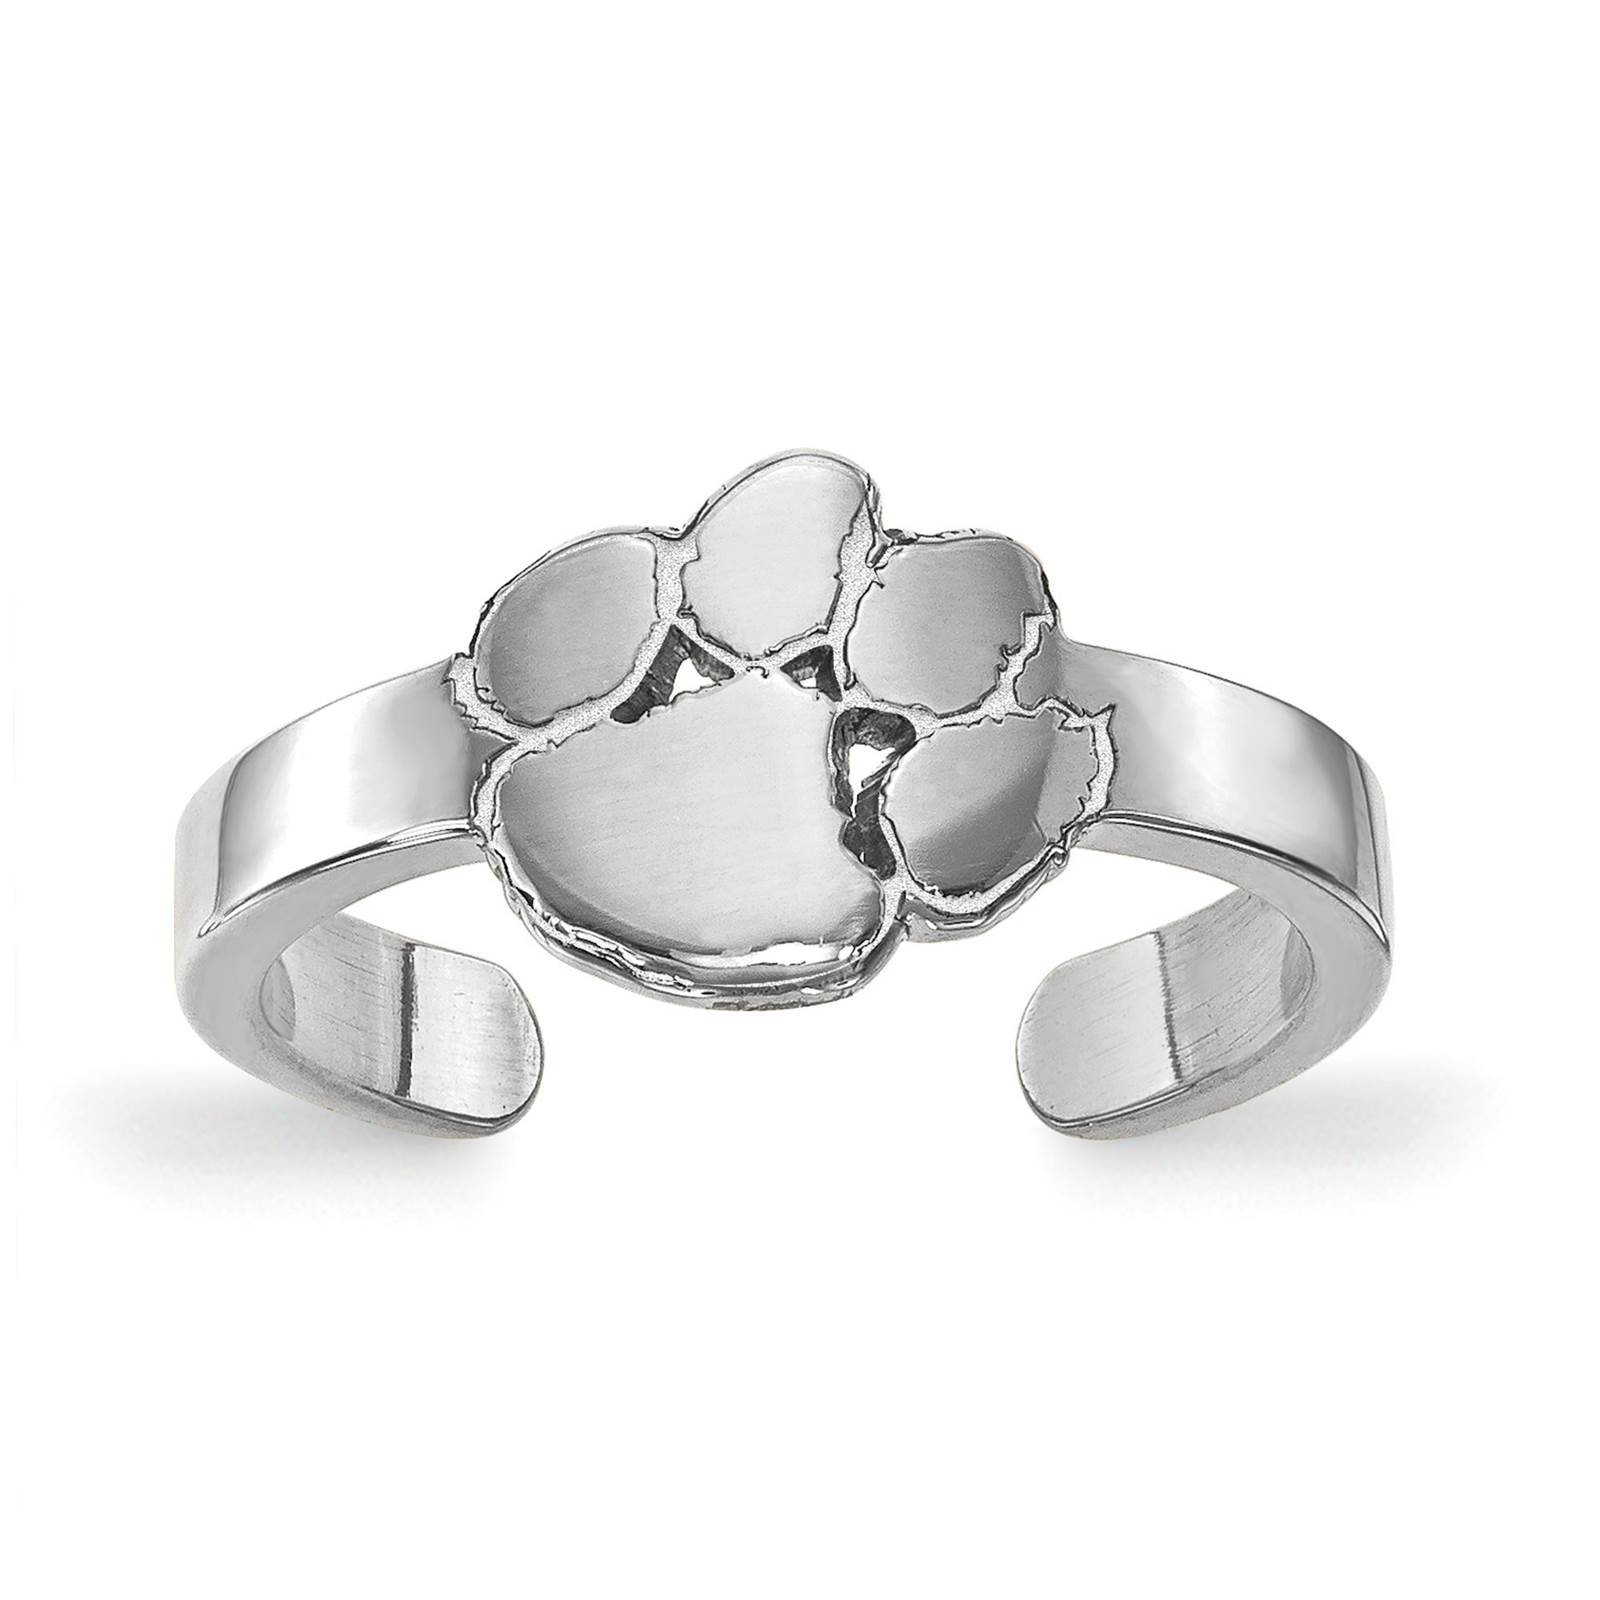 925 Sterling Silver Rhodium-plated Laser-cut Clemson University Toe Ring by Collegiate Jewelry Collection